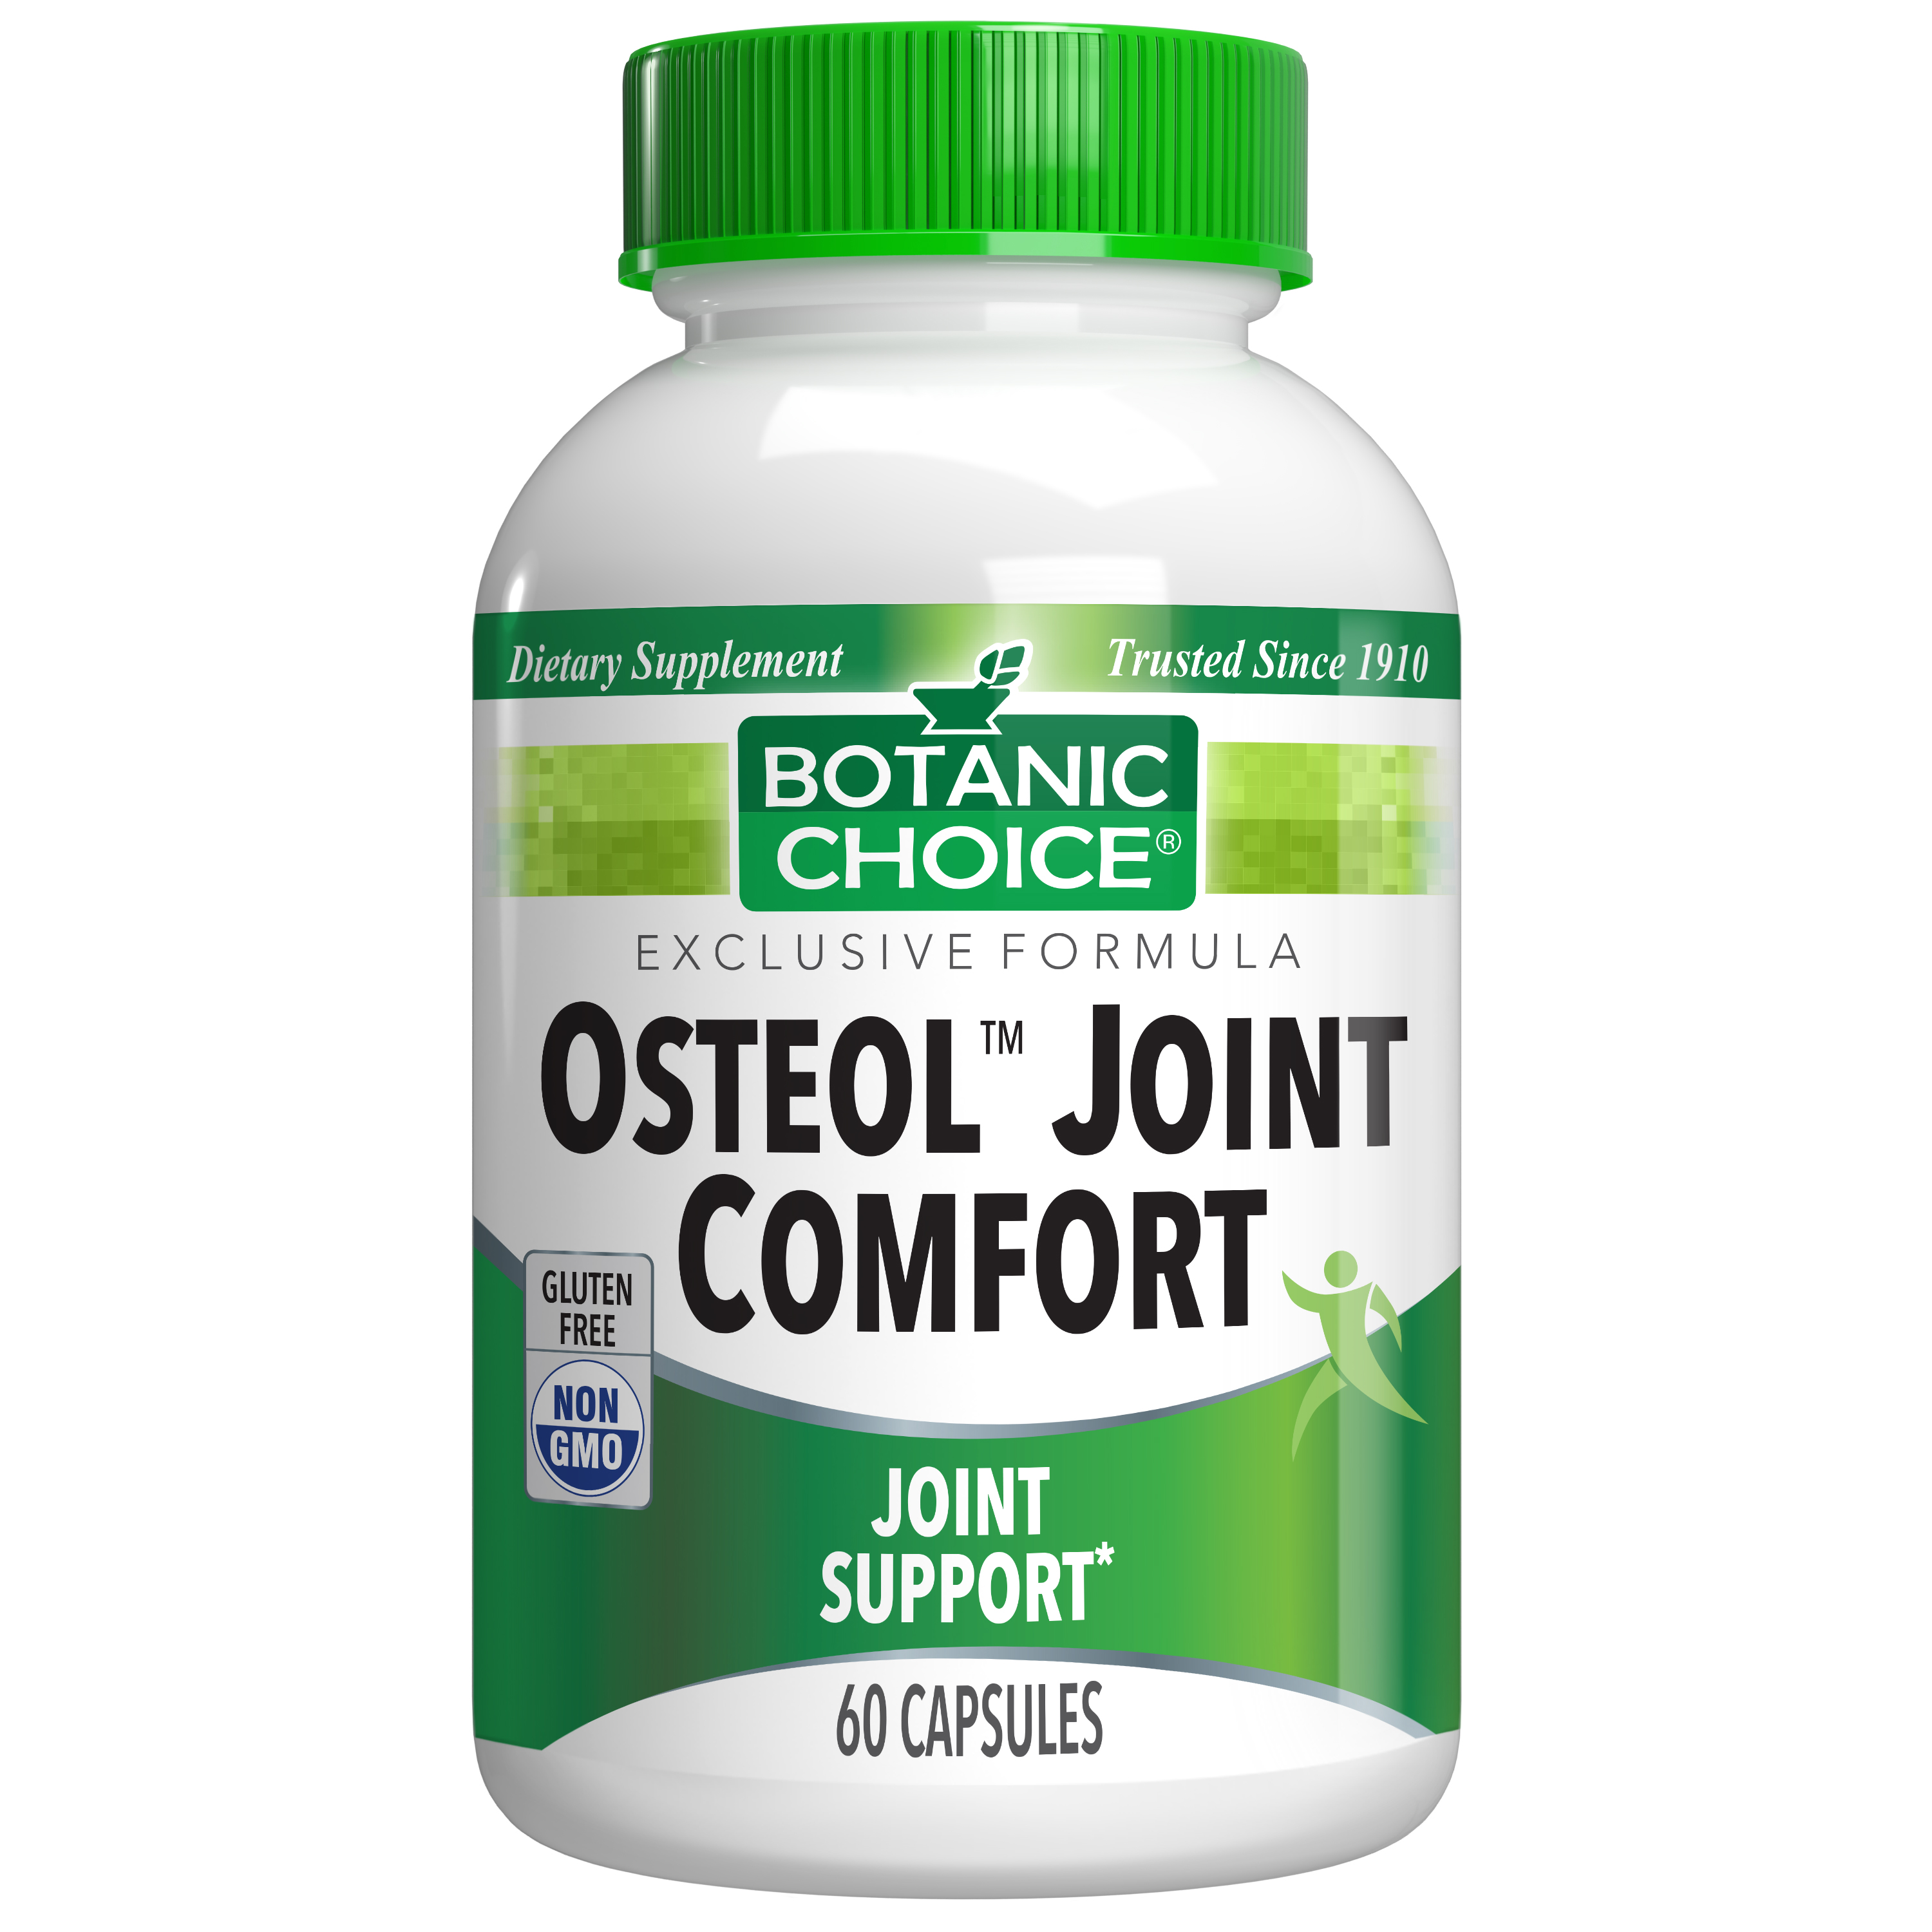 Botanic Choice Osteol™ Joint Comfort™ - Joint Support Supplement - 60 Capsules